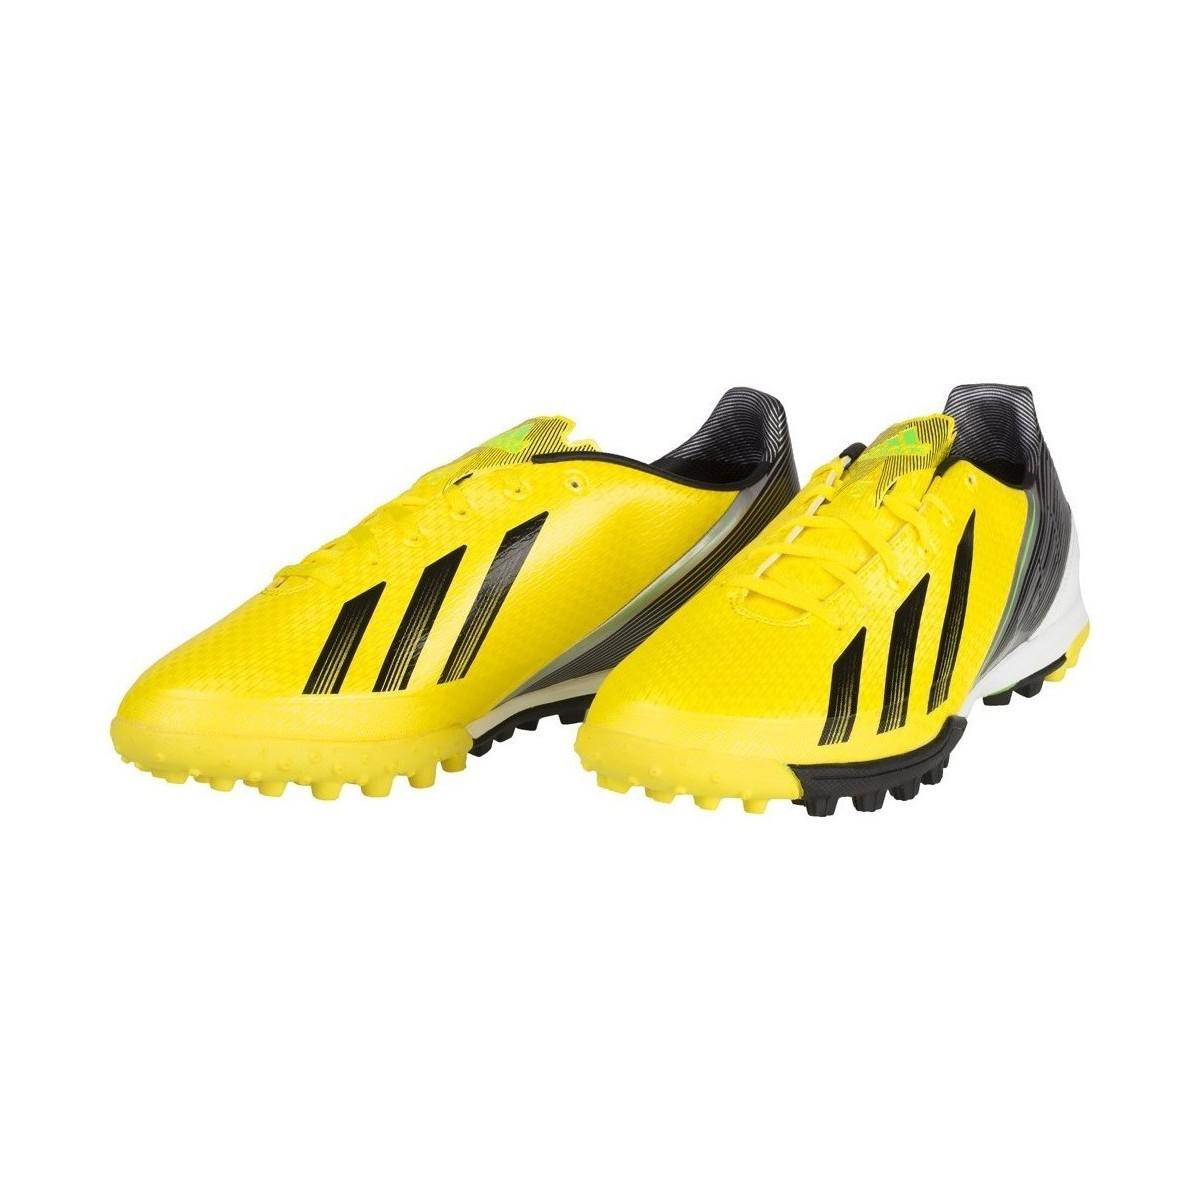 ... spain adidas f30 trx tf mens football boots in silver in metallic for  men 0da0b 11580 24f4055d195a0